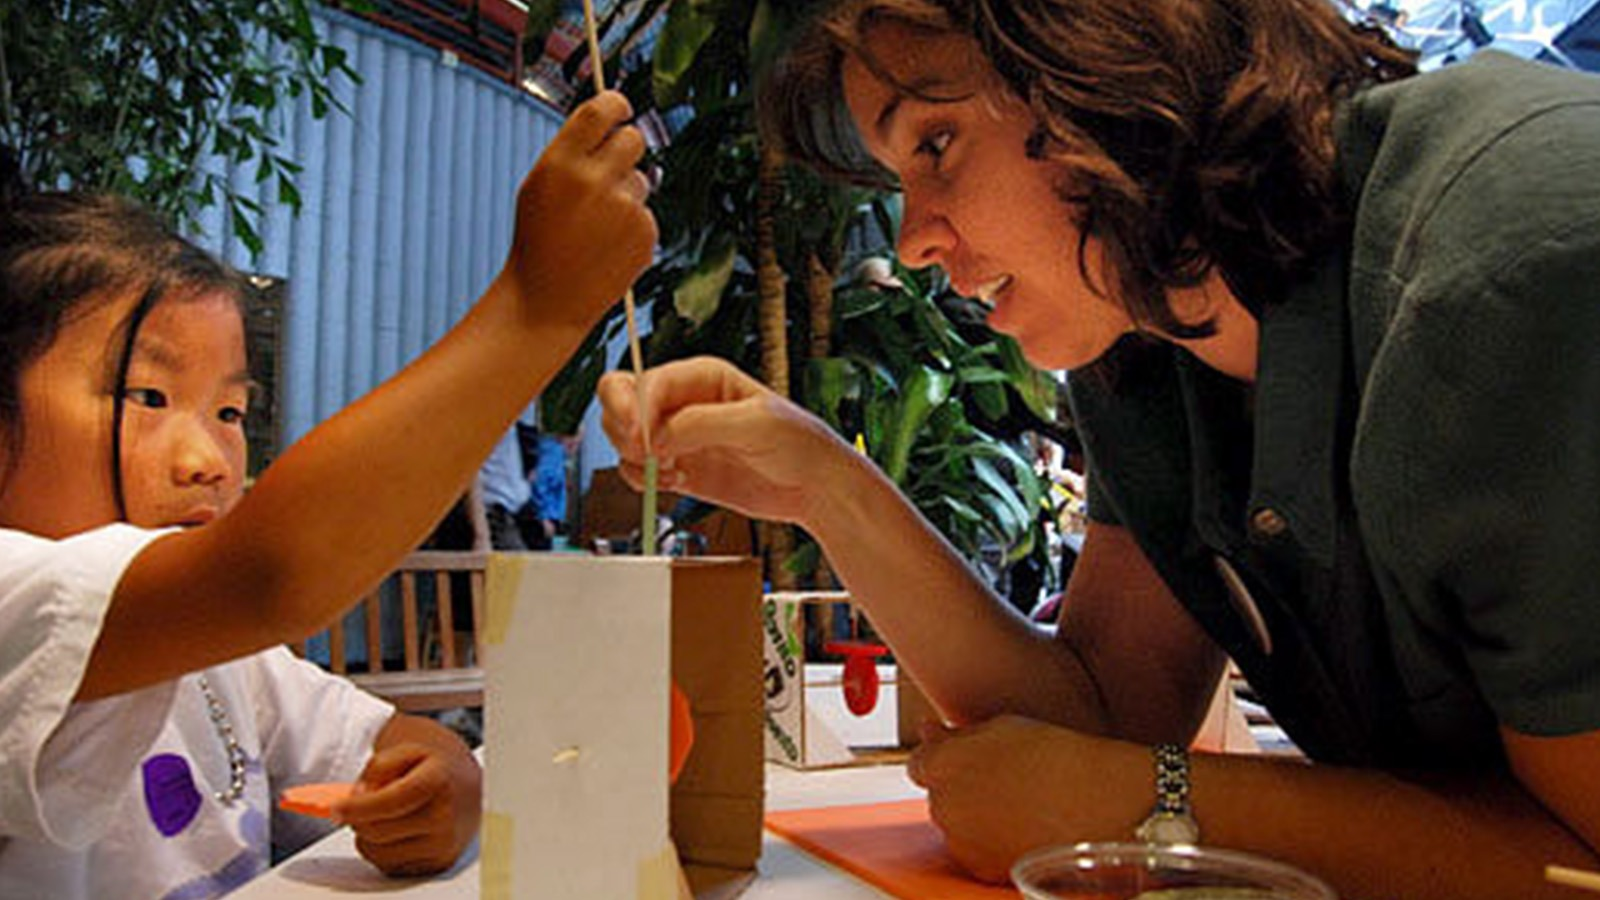 """Karen Wilkinson, the Tinkering Studio's director, says that without hands-on experience to """"solidify abstract concepts,"""" real learning in science cannot take place."""